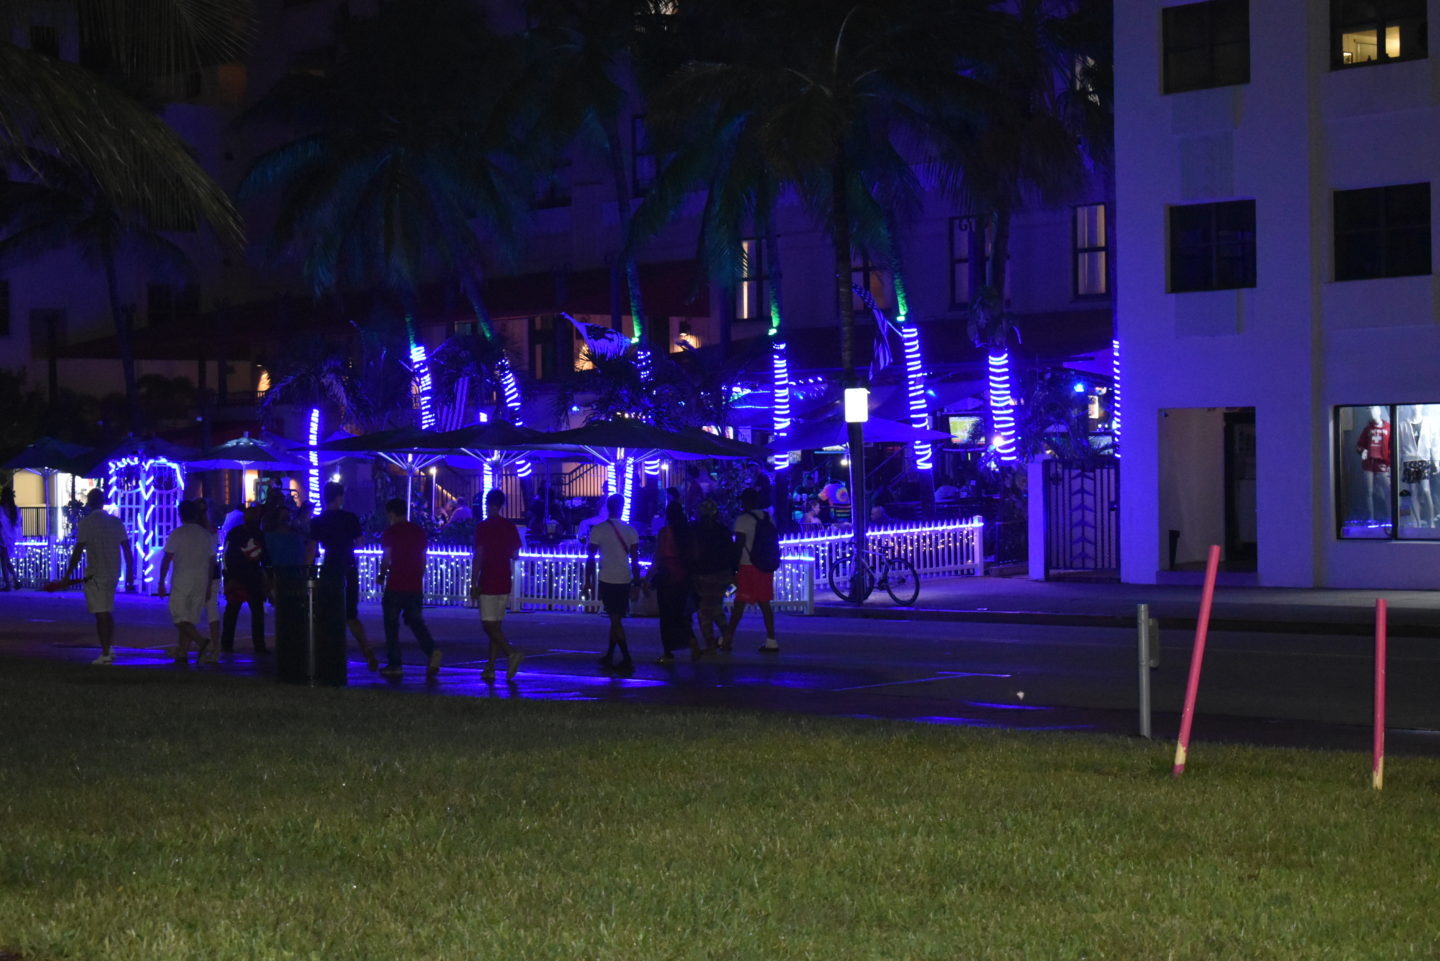 South Beach Nightlife During A Pandemic